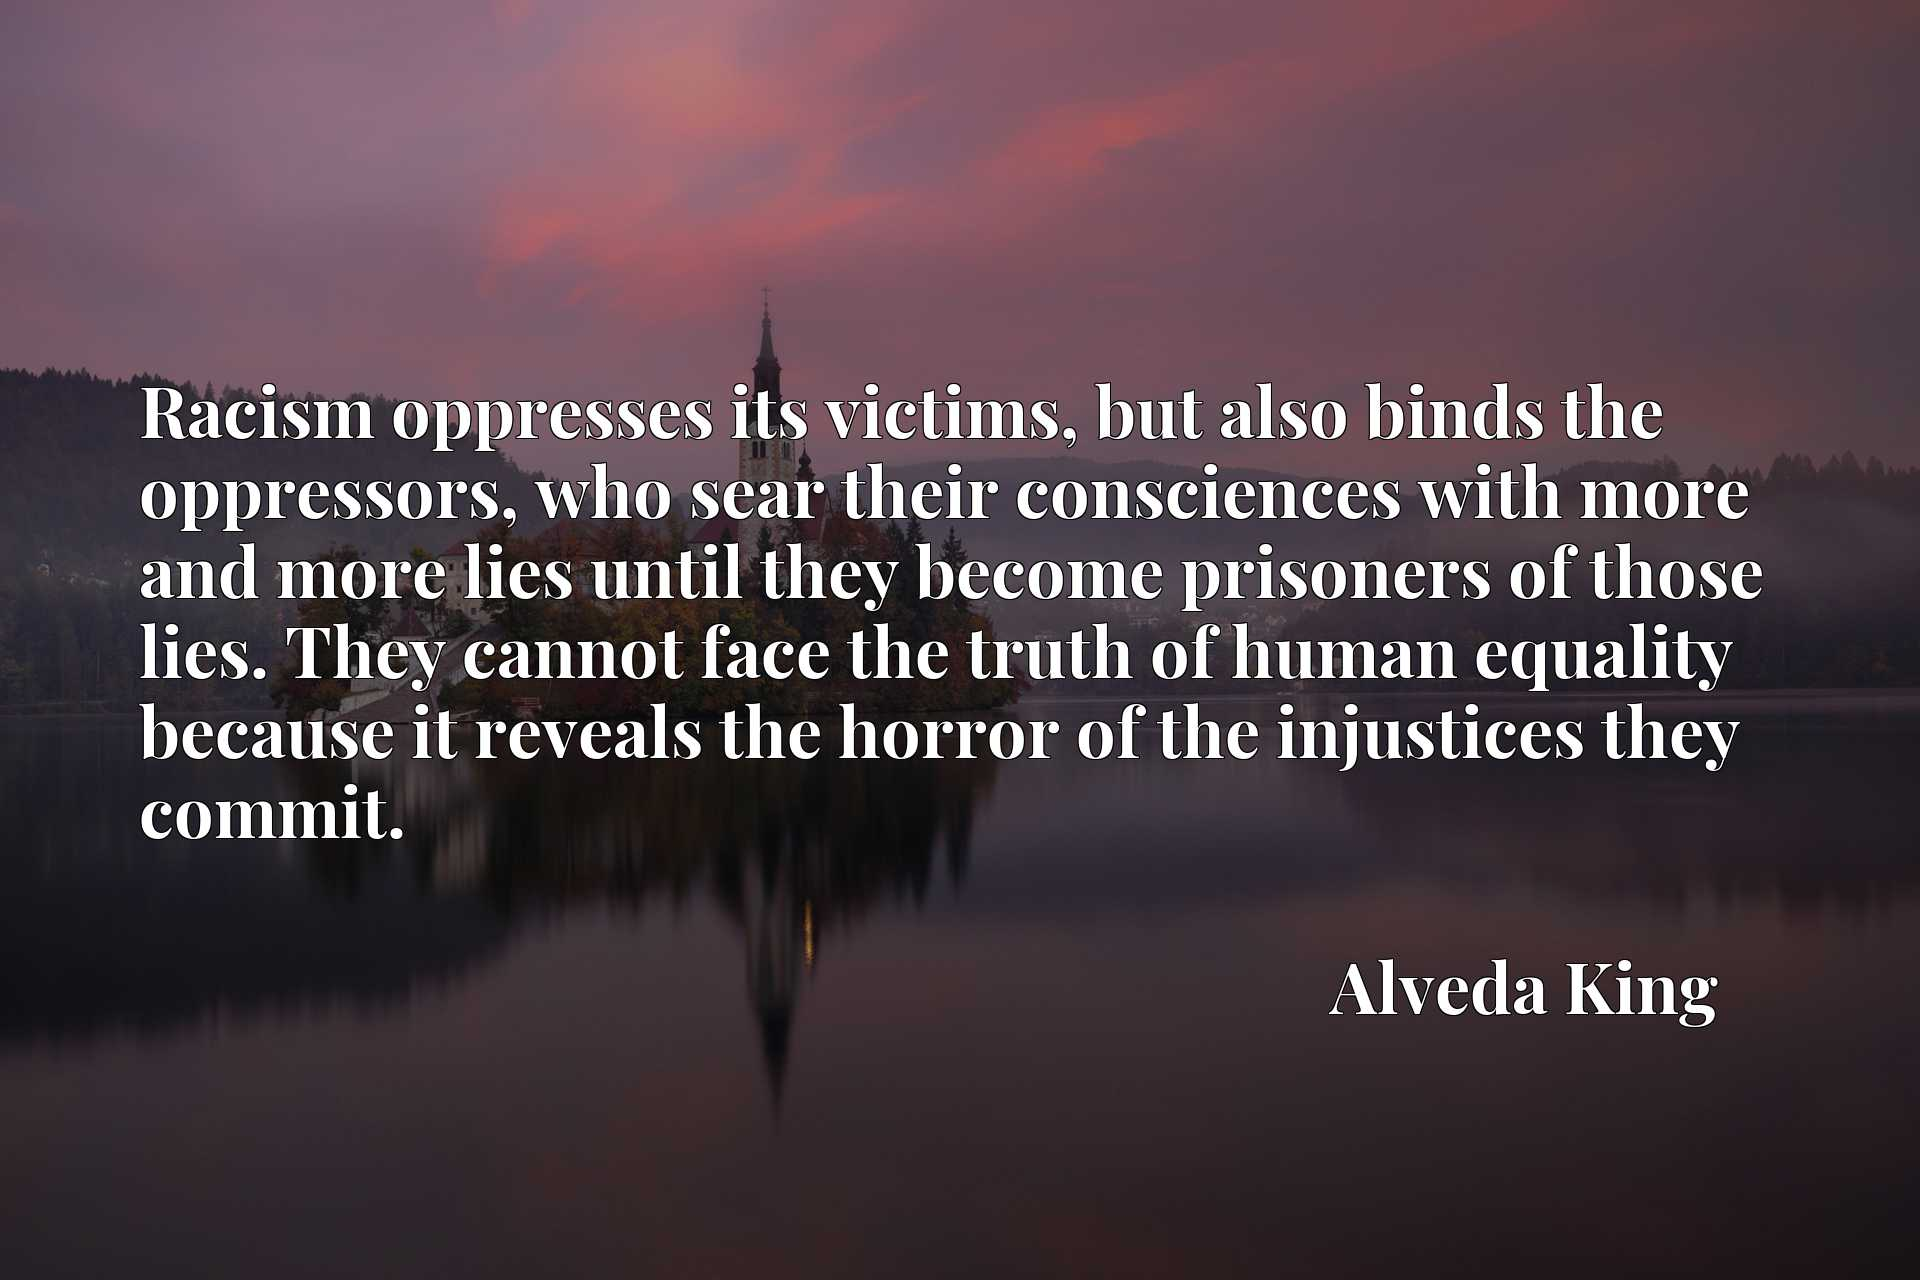 Racism oppresses its victims, but also binds the oppressors, who sear their consciences with more and more lies until they become prisoners of those lies. They cannot face the truth of human equality because it reveals the horror of the injustices they commit.